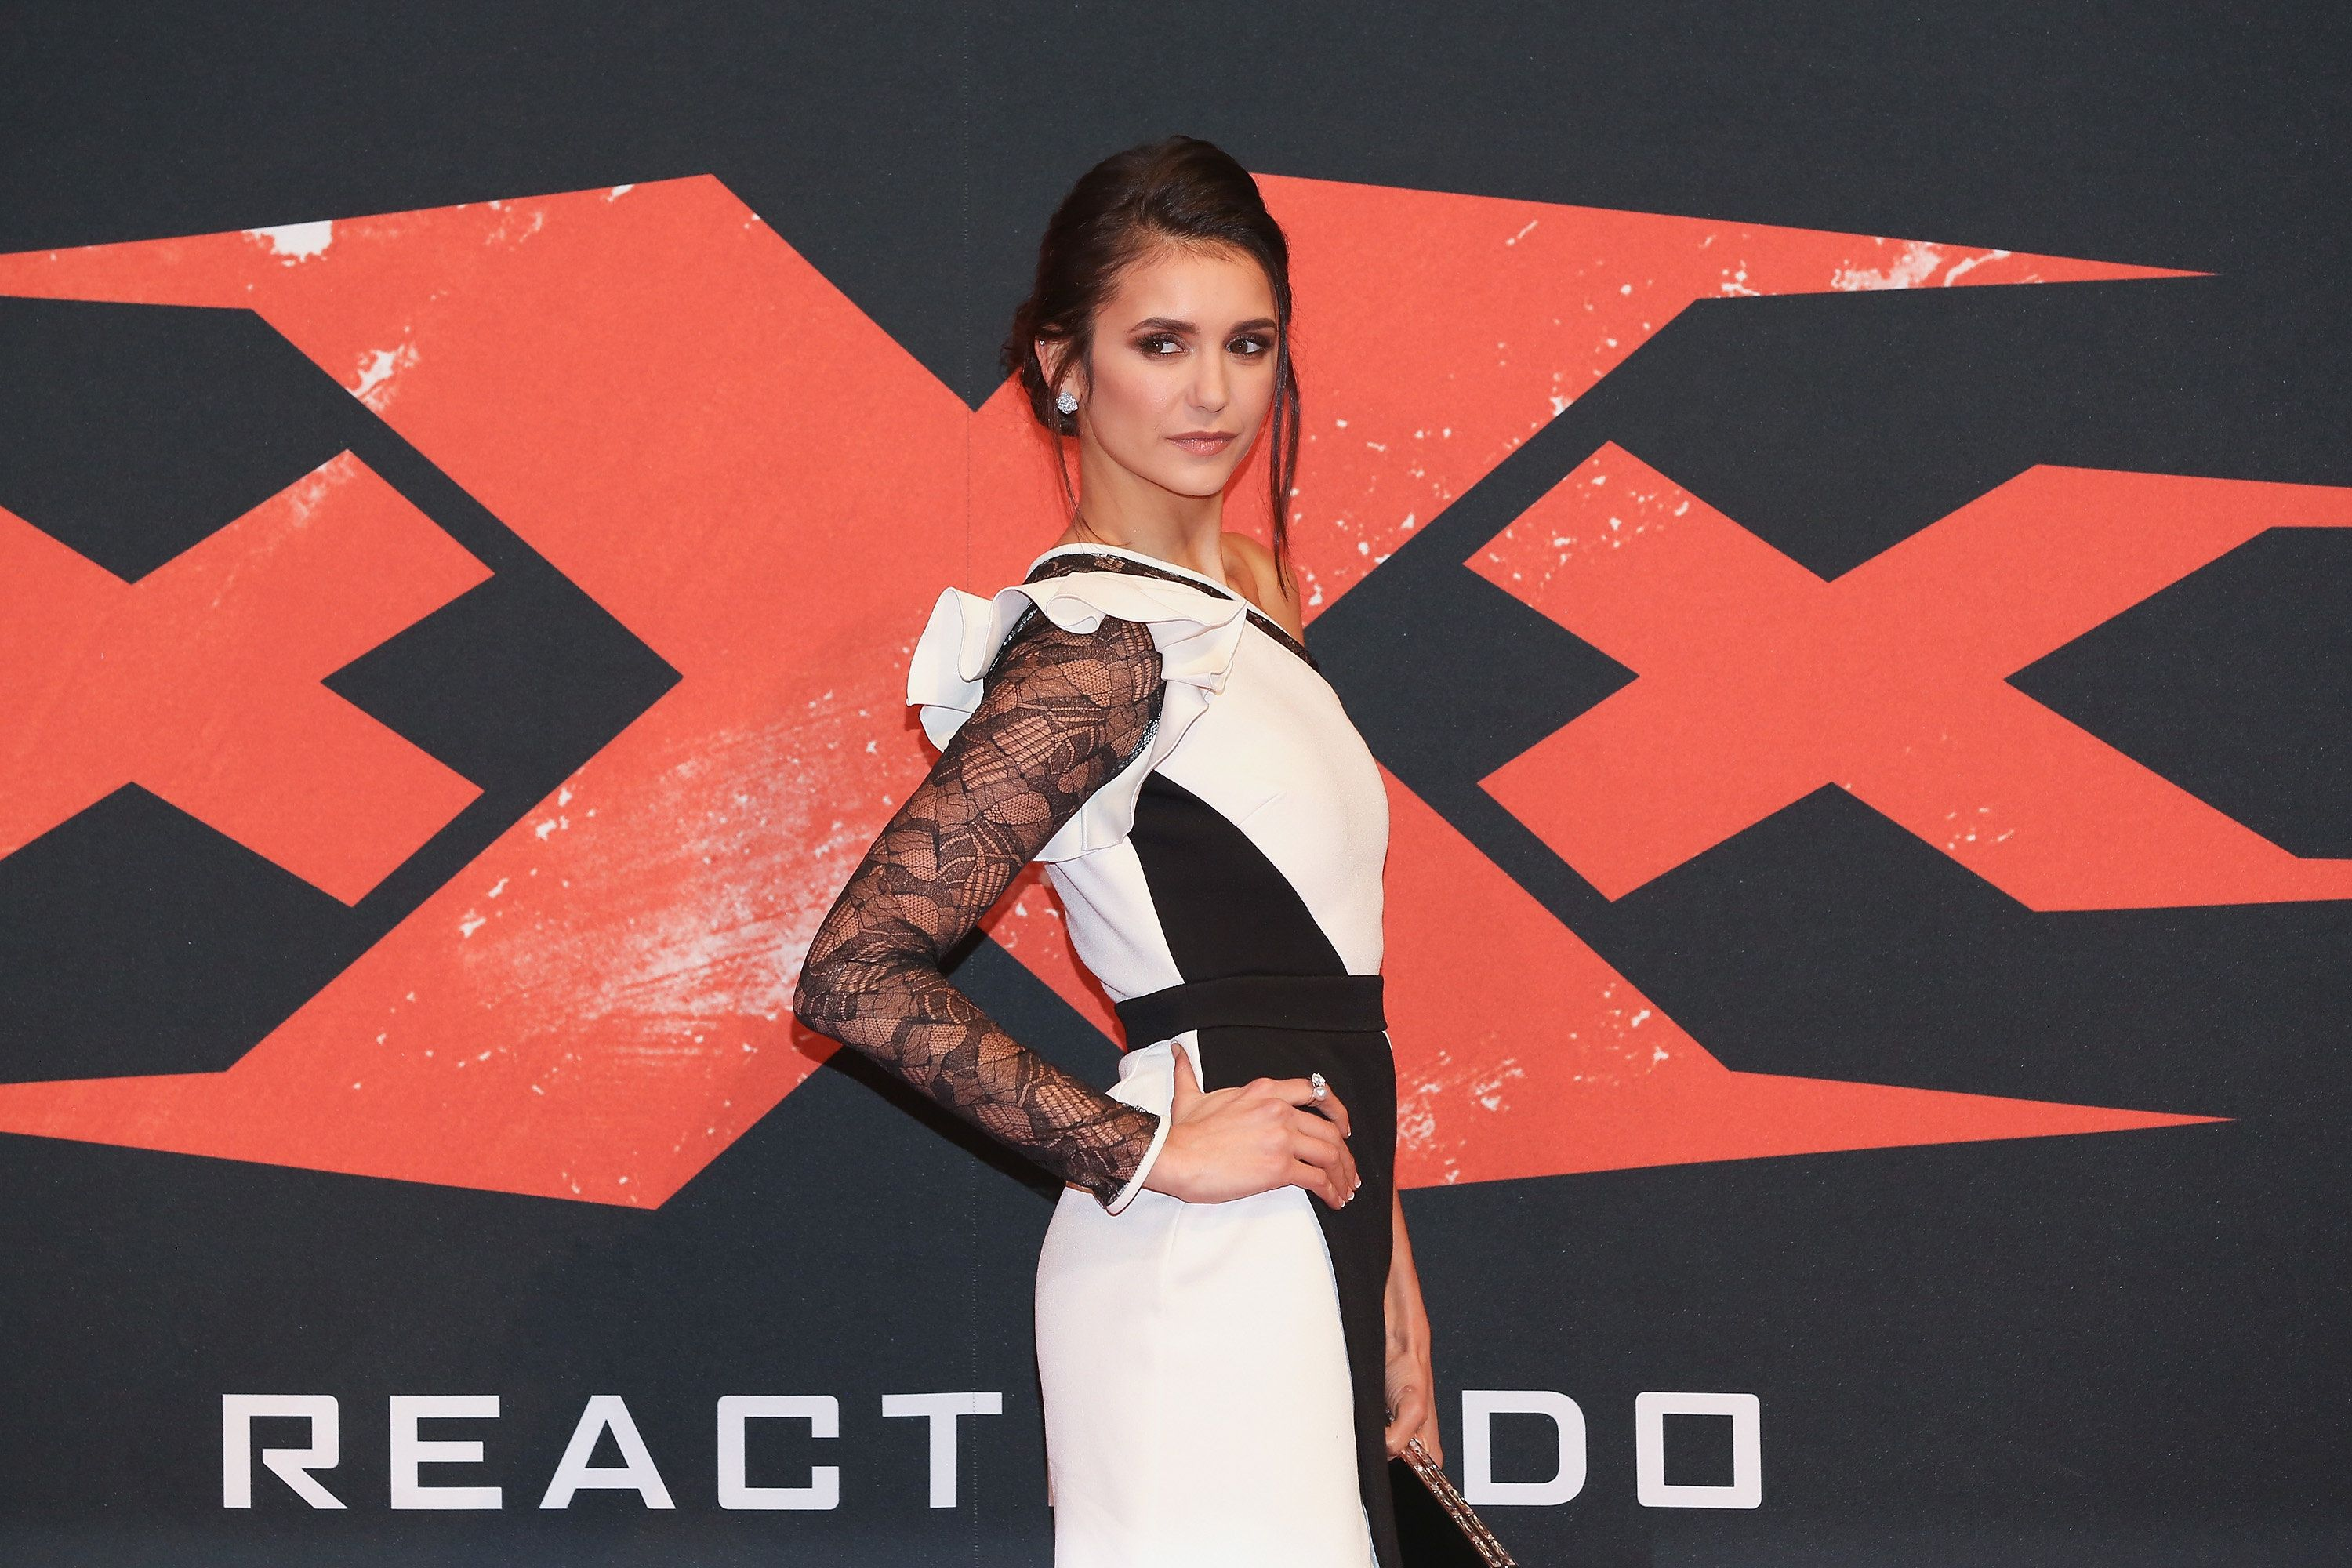 MEXICO CITY, MEXICO - JANUARY 05:  Nina Dobrev attends the Mexico City Premiere of the Paramount Pictures 'xXx: Return of Xander Cage' at Auditorio Nacional on January 5, 2017 in Mexico City, Mexico.  (Photo by Victor Chavez/Getty Images for Paramount Pictures)